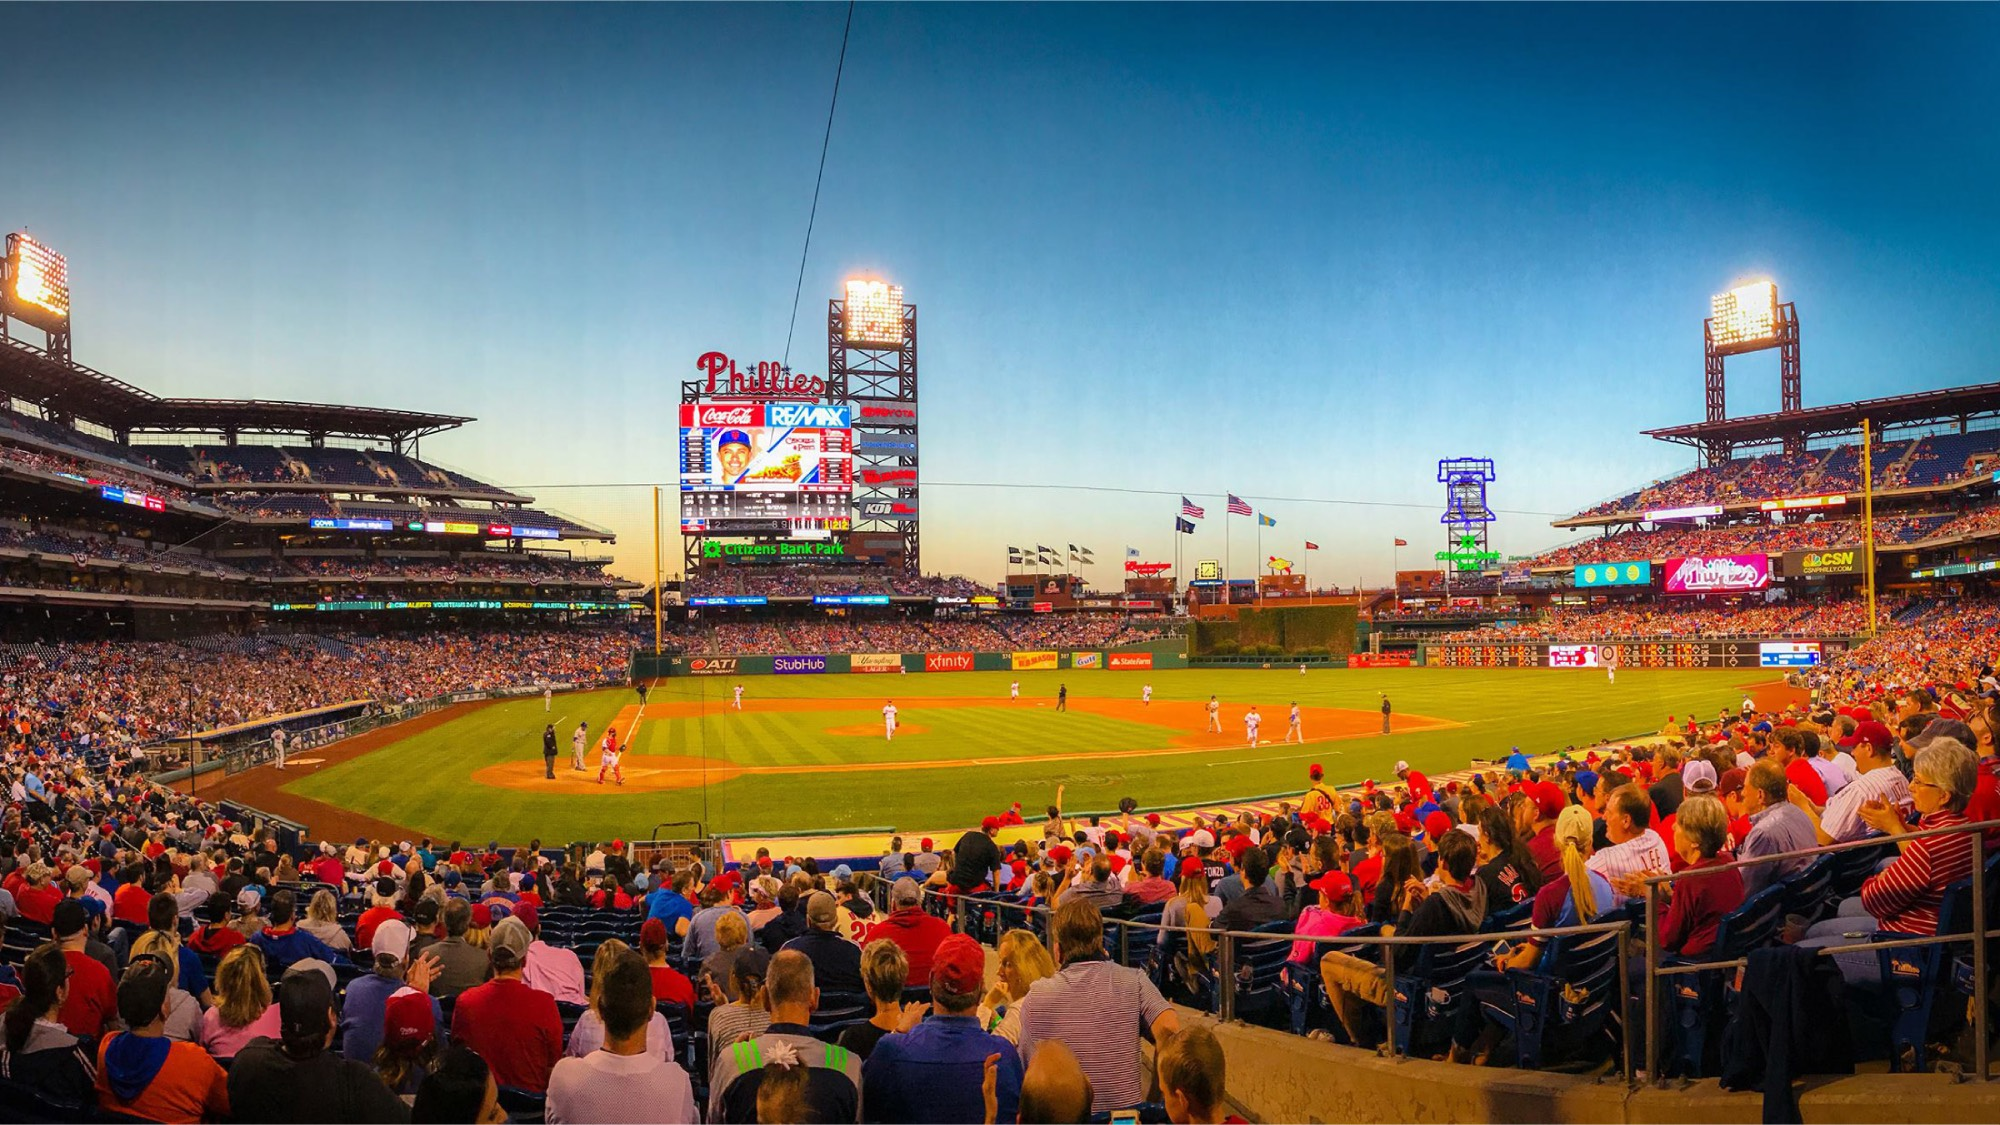 A baseball game at Philadelphia Phillies' stadium